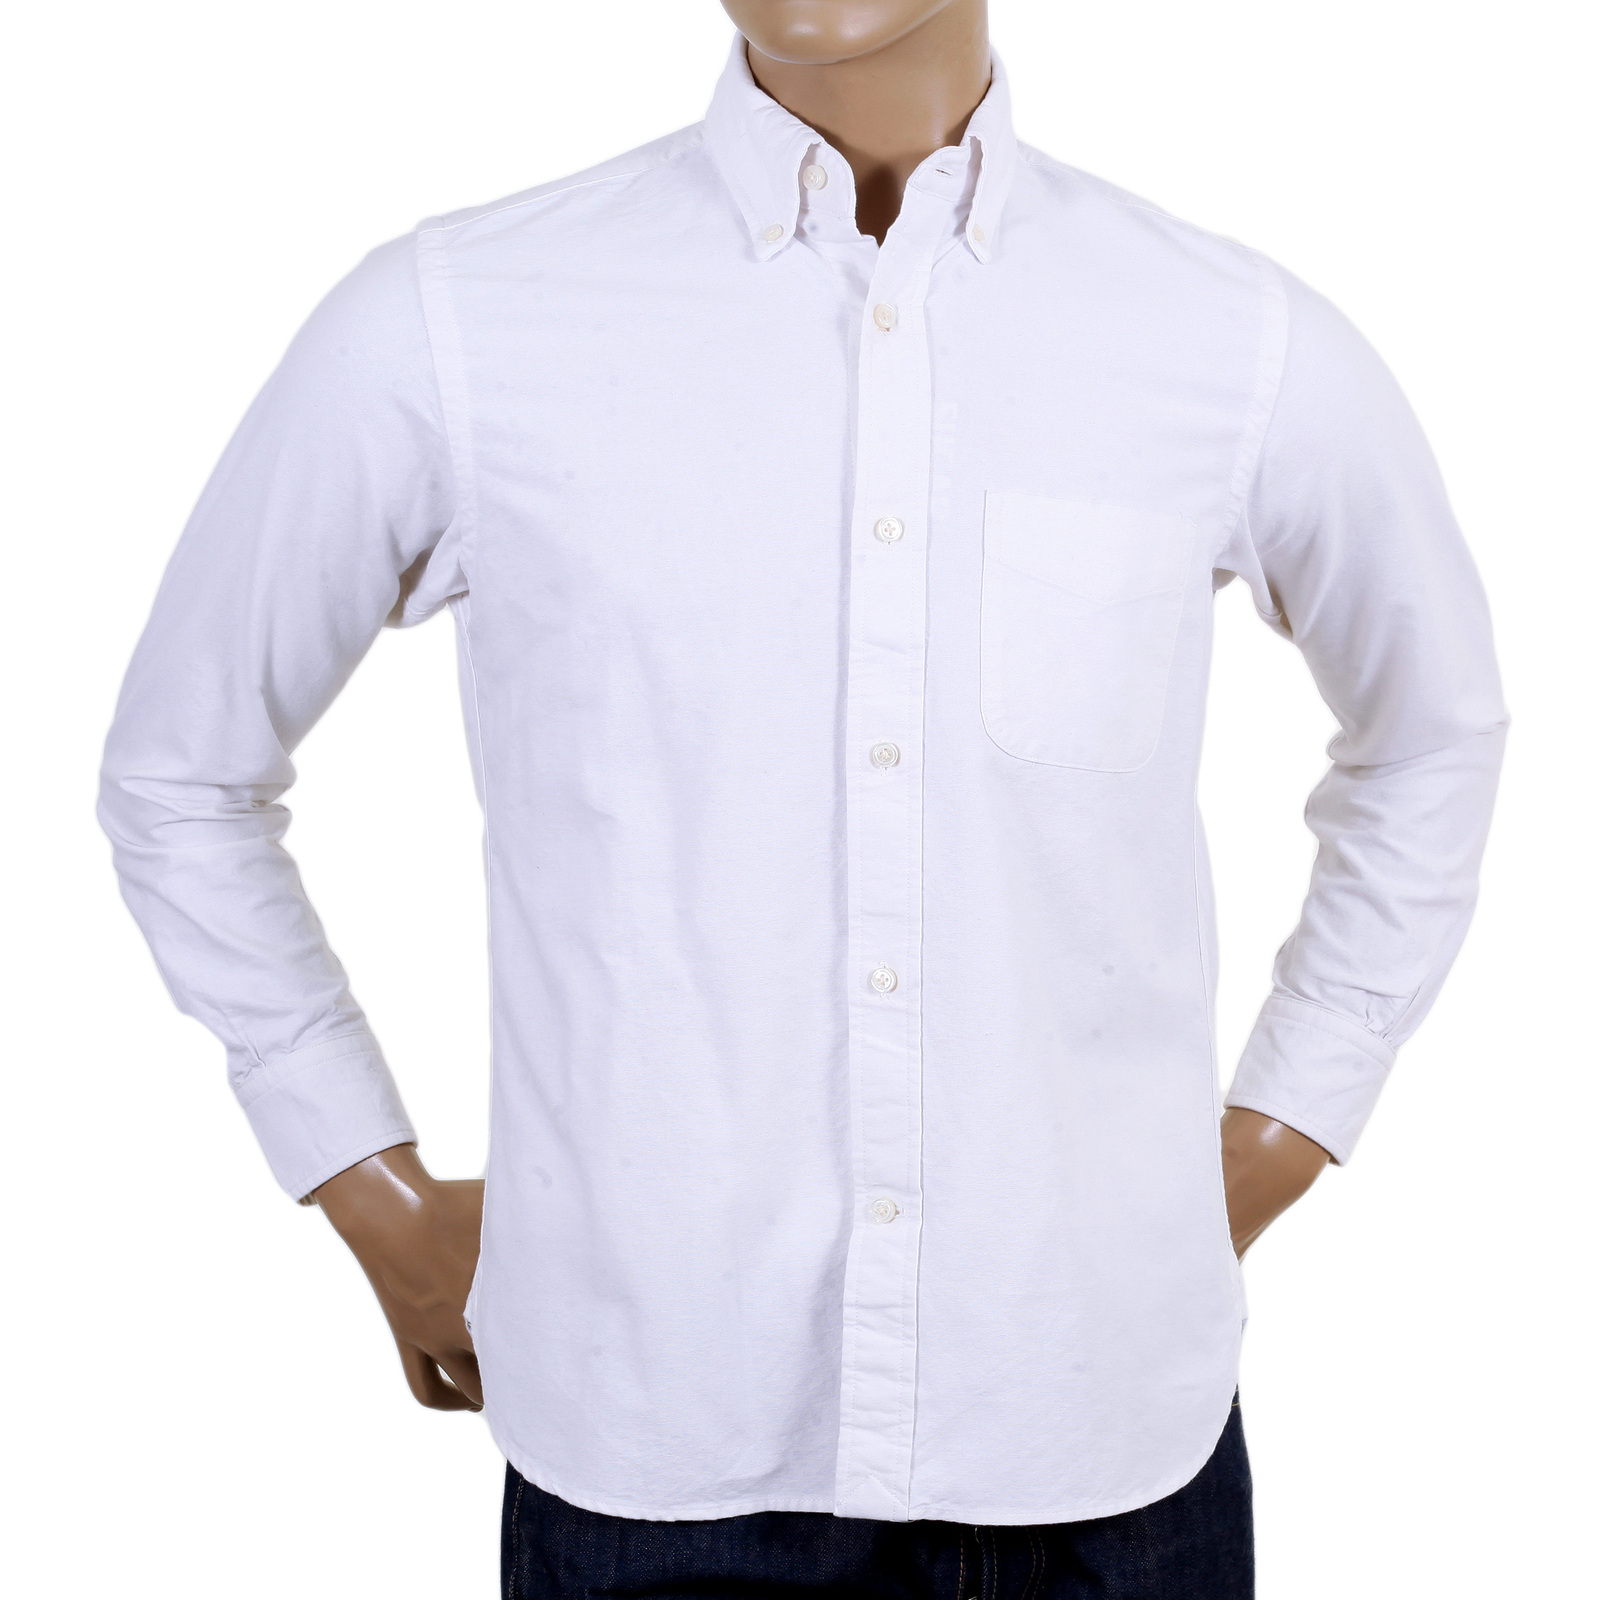 The white Oxford shirt is a staple that can be worn to suit pretty much any style, from casual to formal, and is one of the few pieces that suits everyone. The problem is that it tends to be associated with bland office wear, and people shy away from wearing it more casually, or experimenting with.